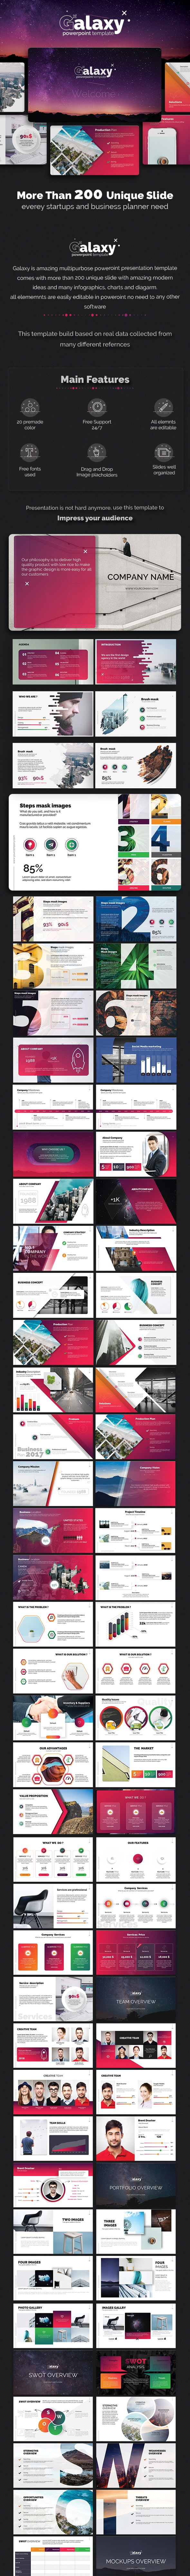 Galaxy PowerPoint Template - Business PowerPoint Templates